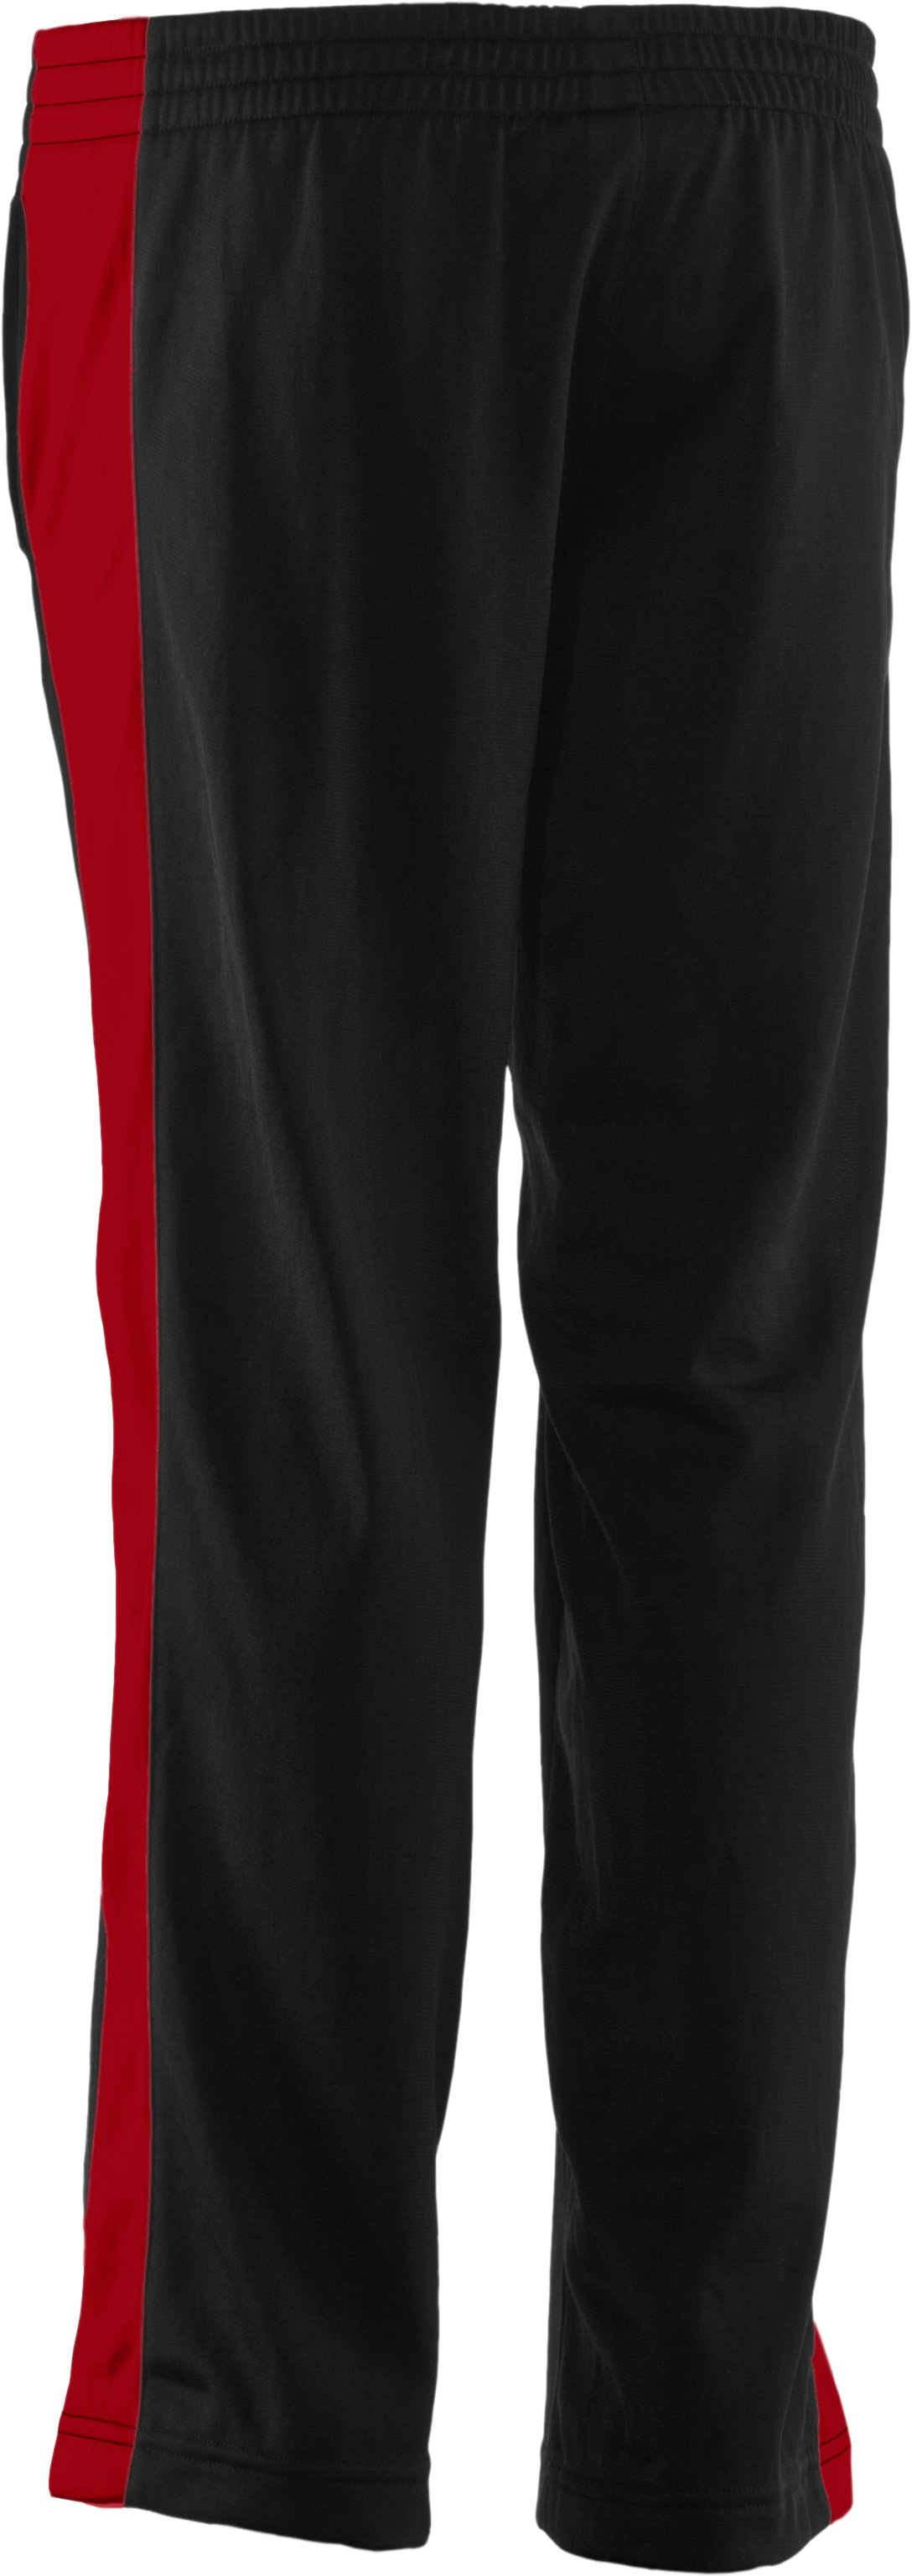 Boys' UA Brawler Knit Warm-Up Pants, Black